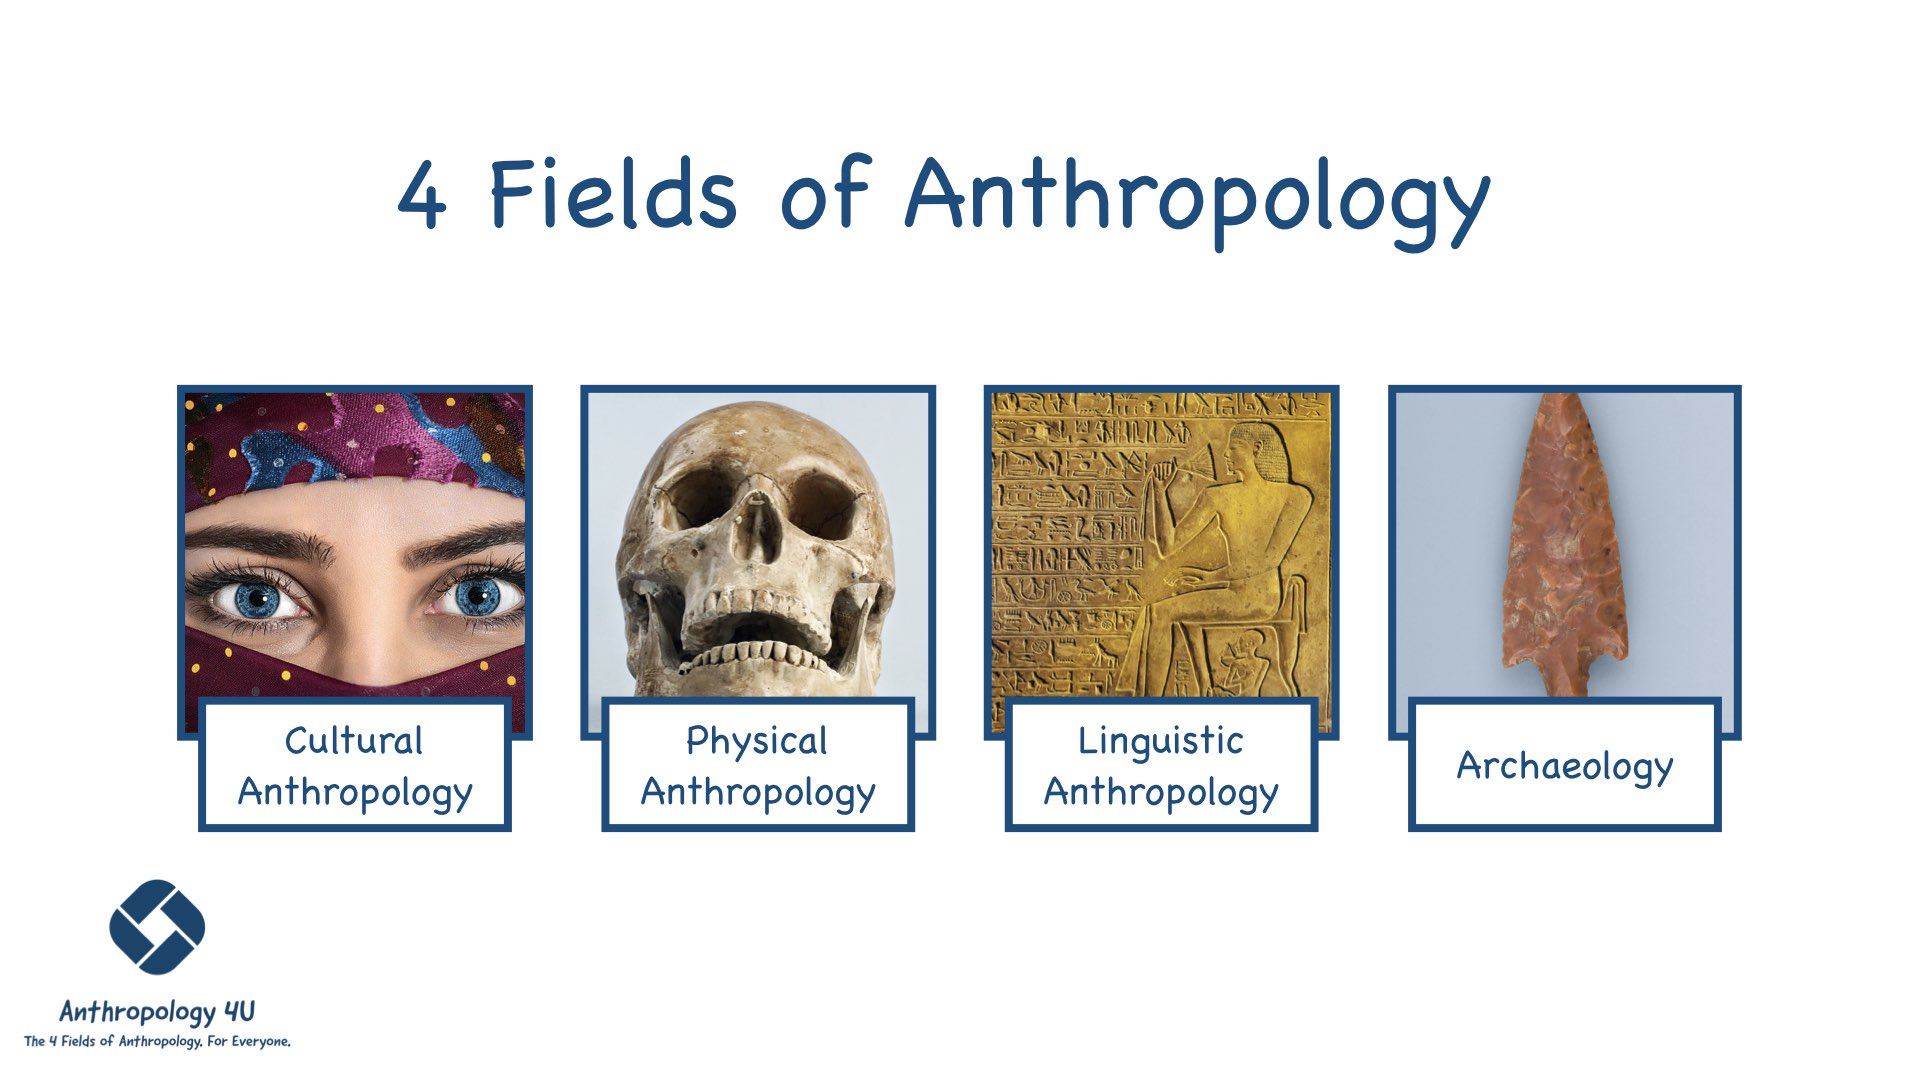 A Beginner's Guide to the 4 Fields of Anthropology - Anthropology 4U